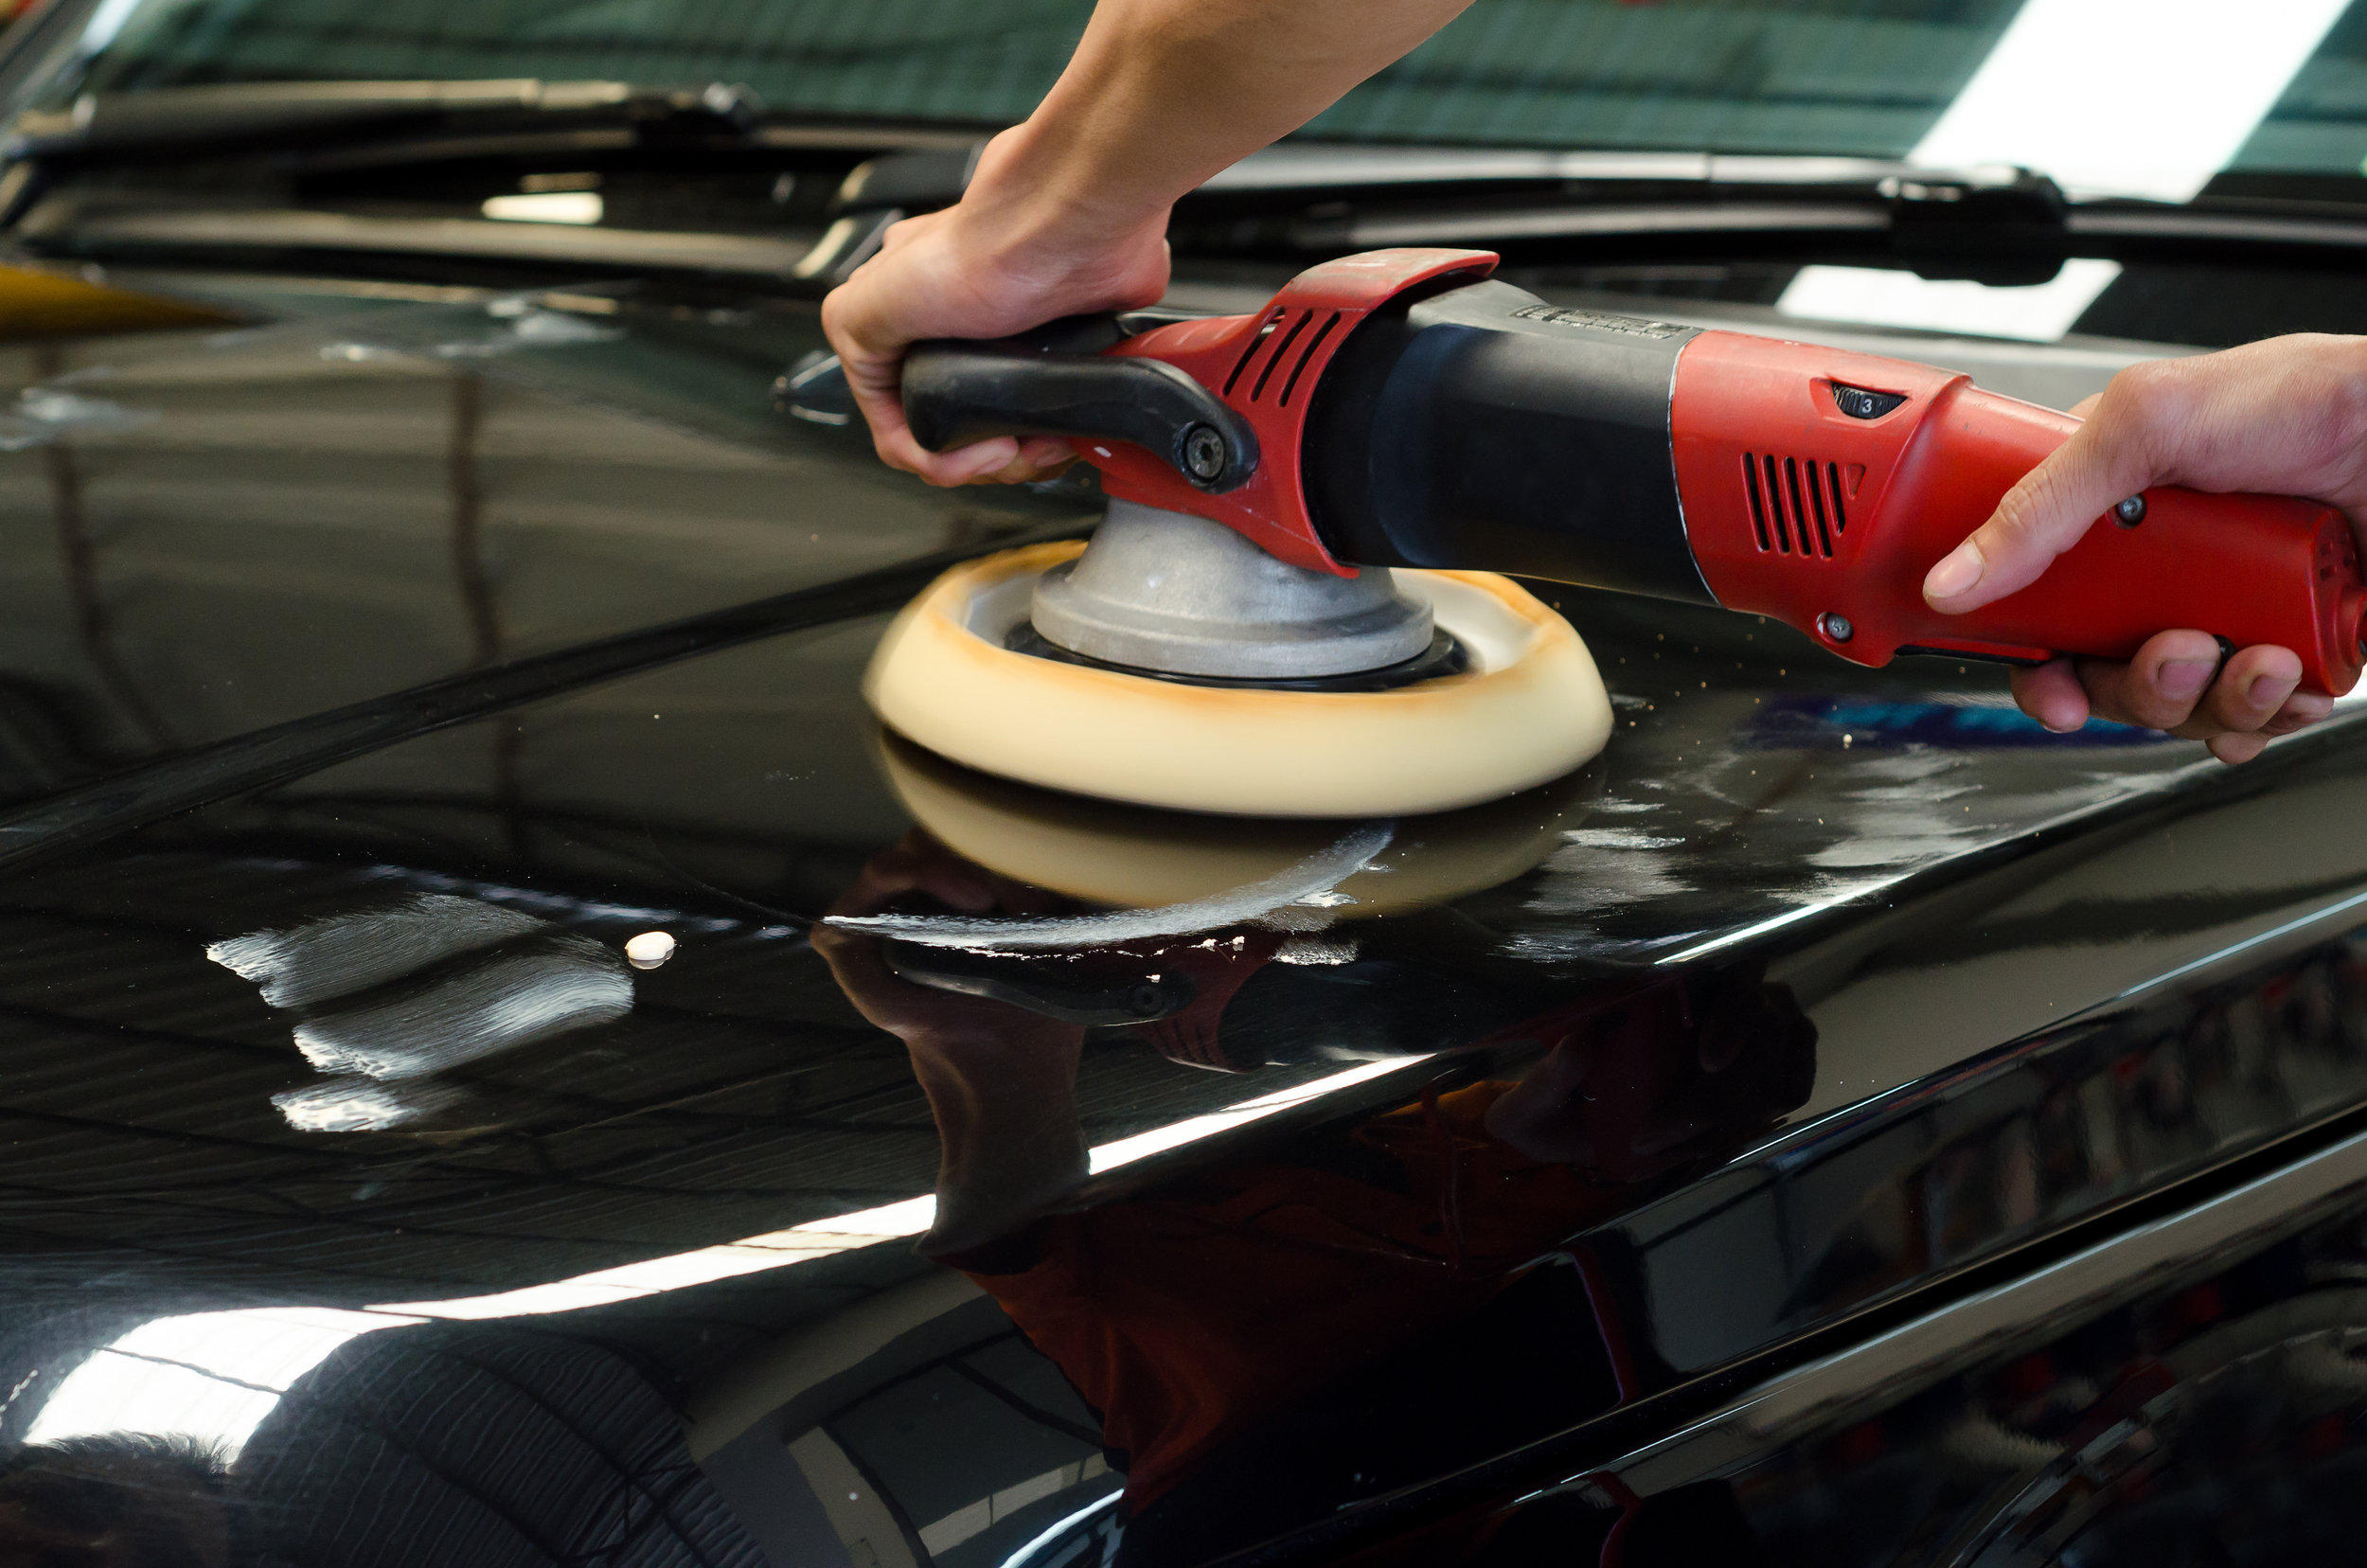 Car Detailing, Polished Black Car By Polishing Machine.